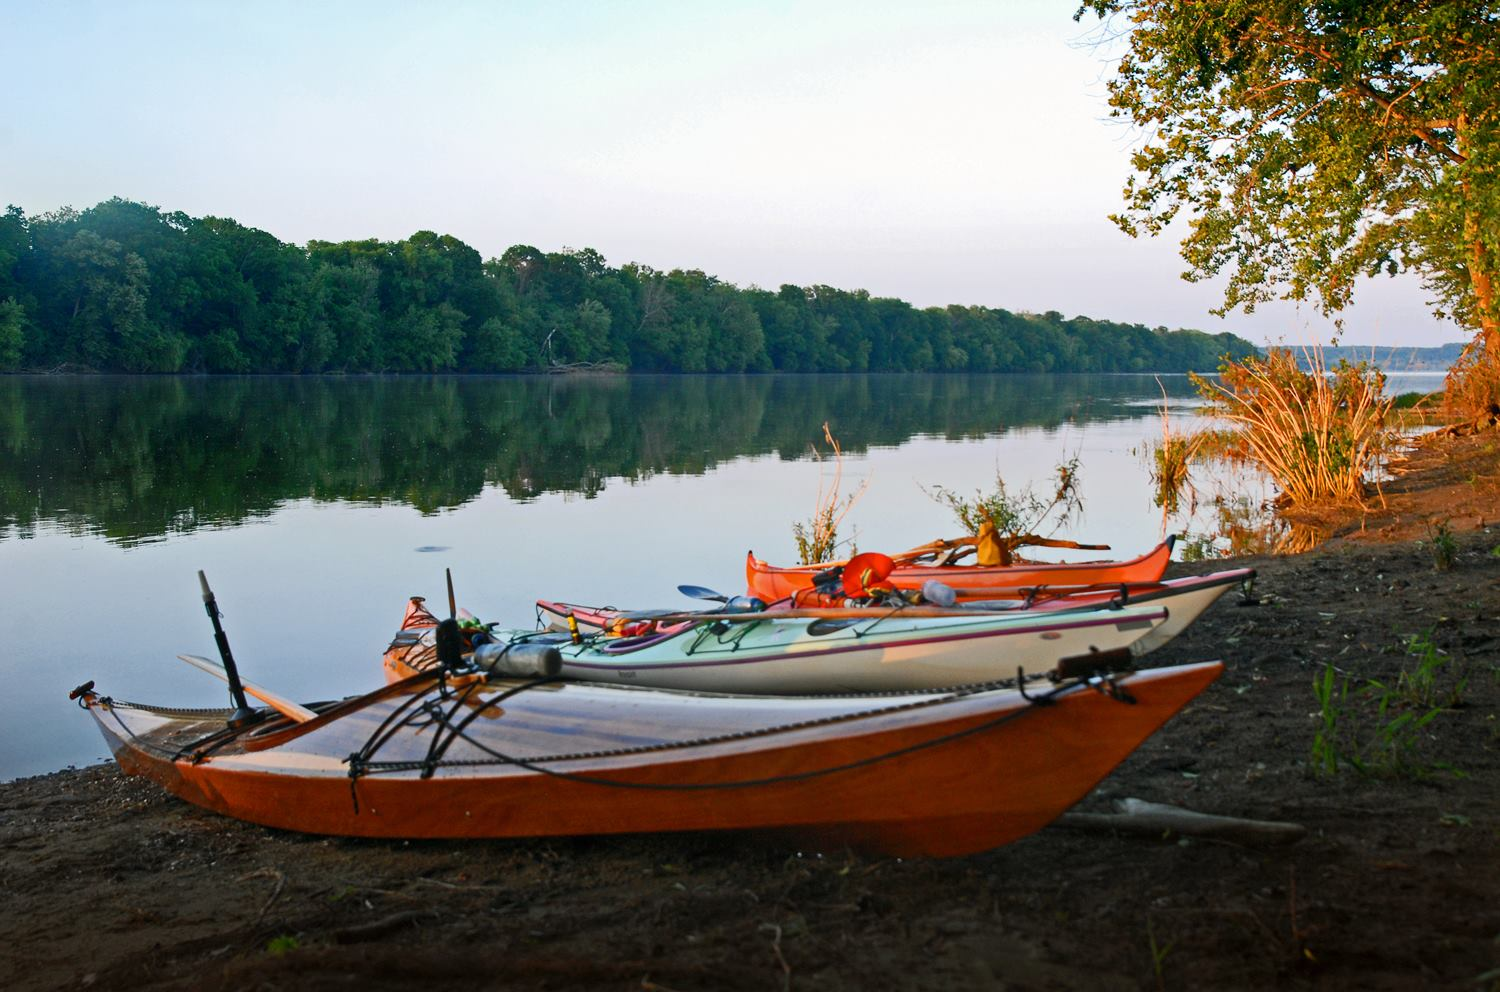 Kayaks resting on the shore of the Potomac River with the river and treeline in the background.